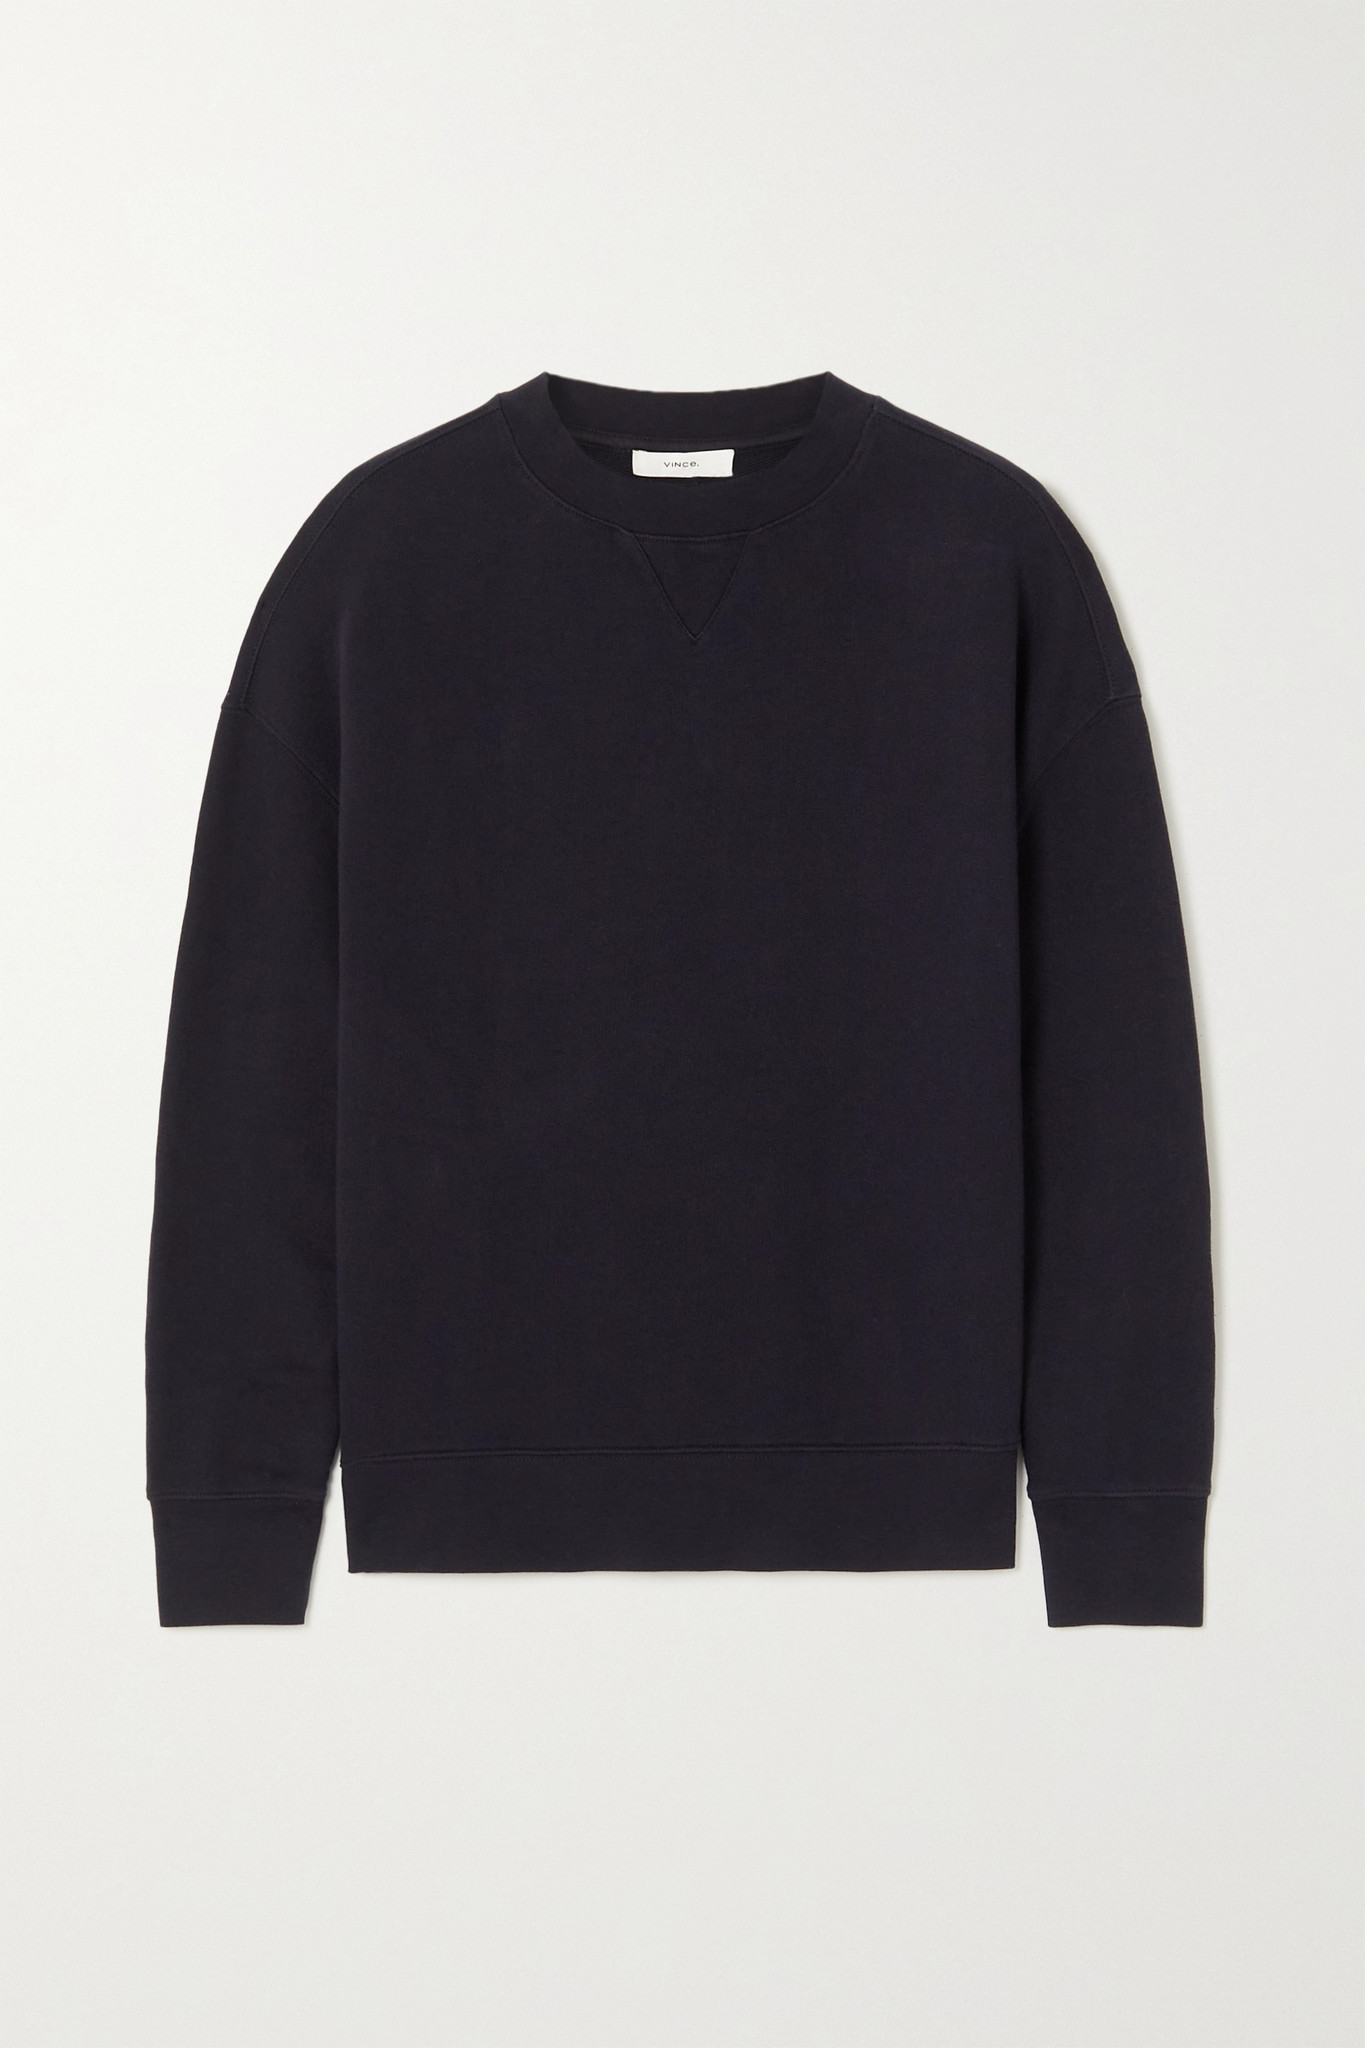 VINCE - Cotton-jersey Sweatshirt - Black - small